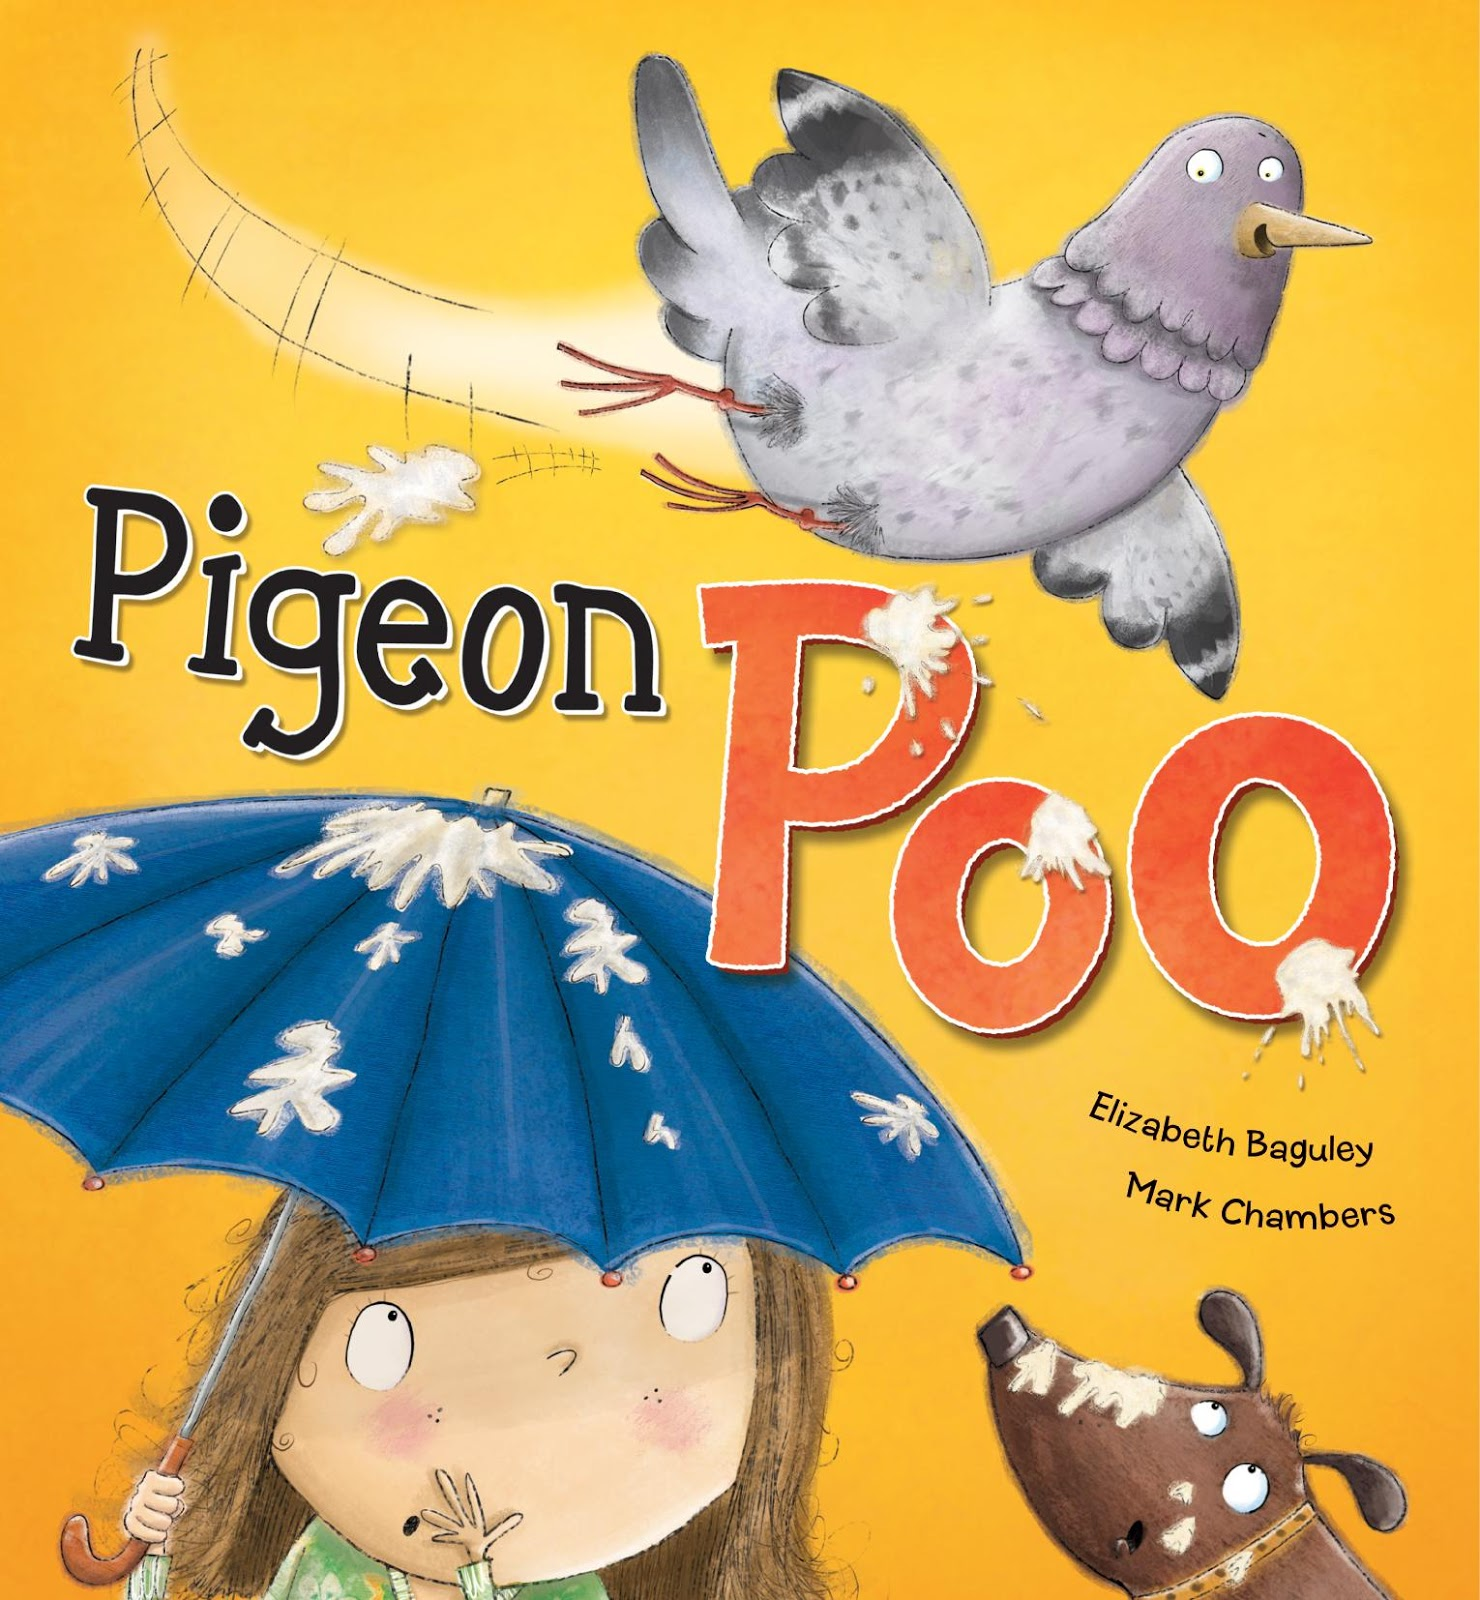 Sheffield childrens book award winners archive picture books 2013 winner pigeon poo voltagebd